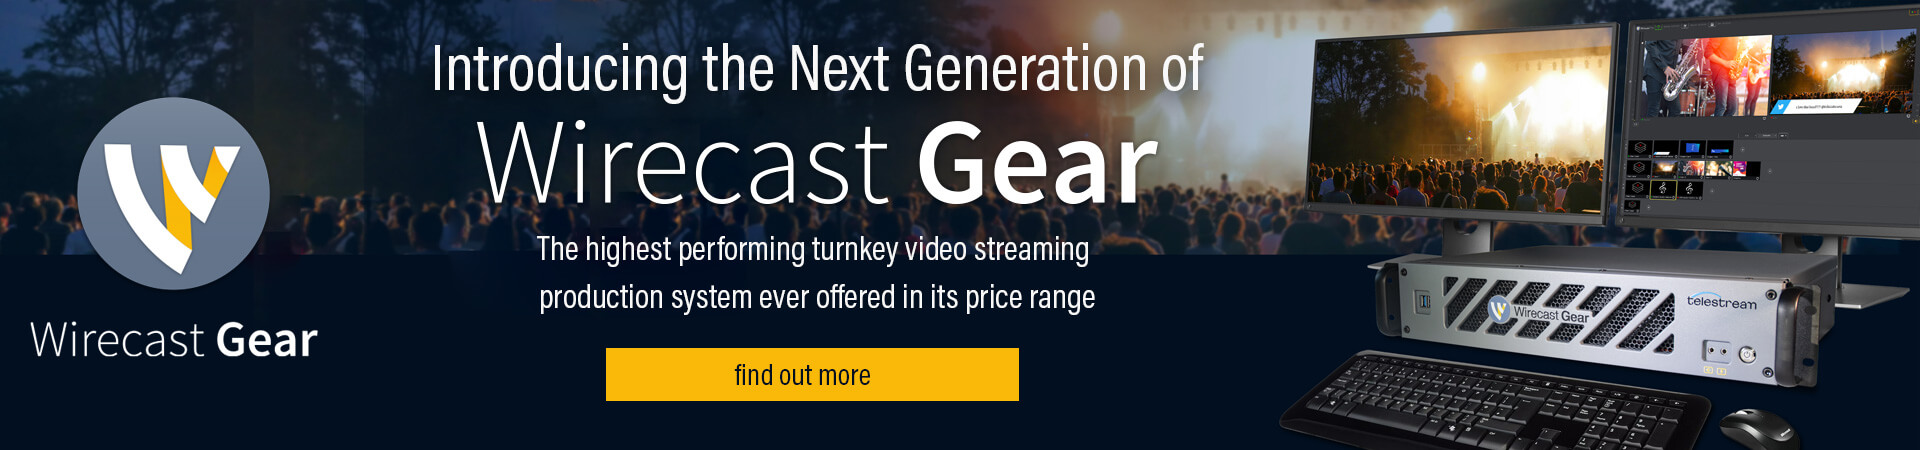 Introducing Wirecast Gear 2